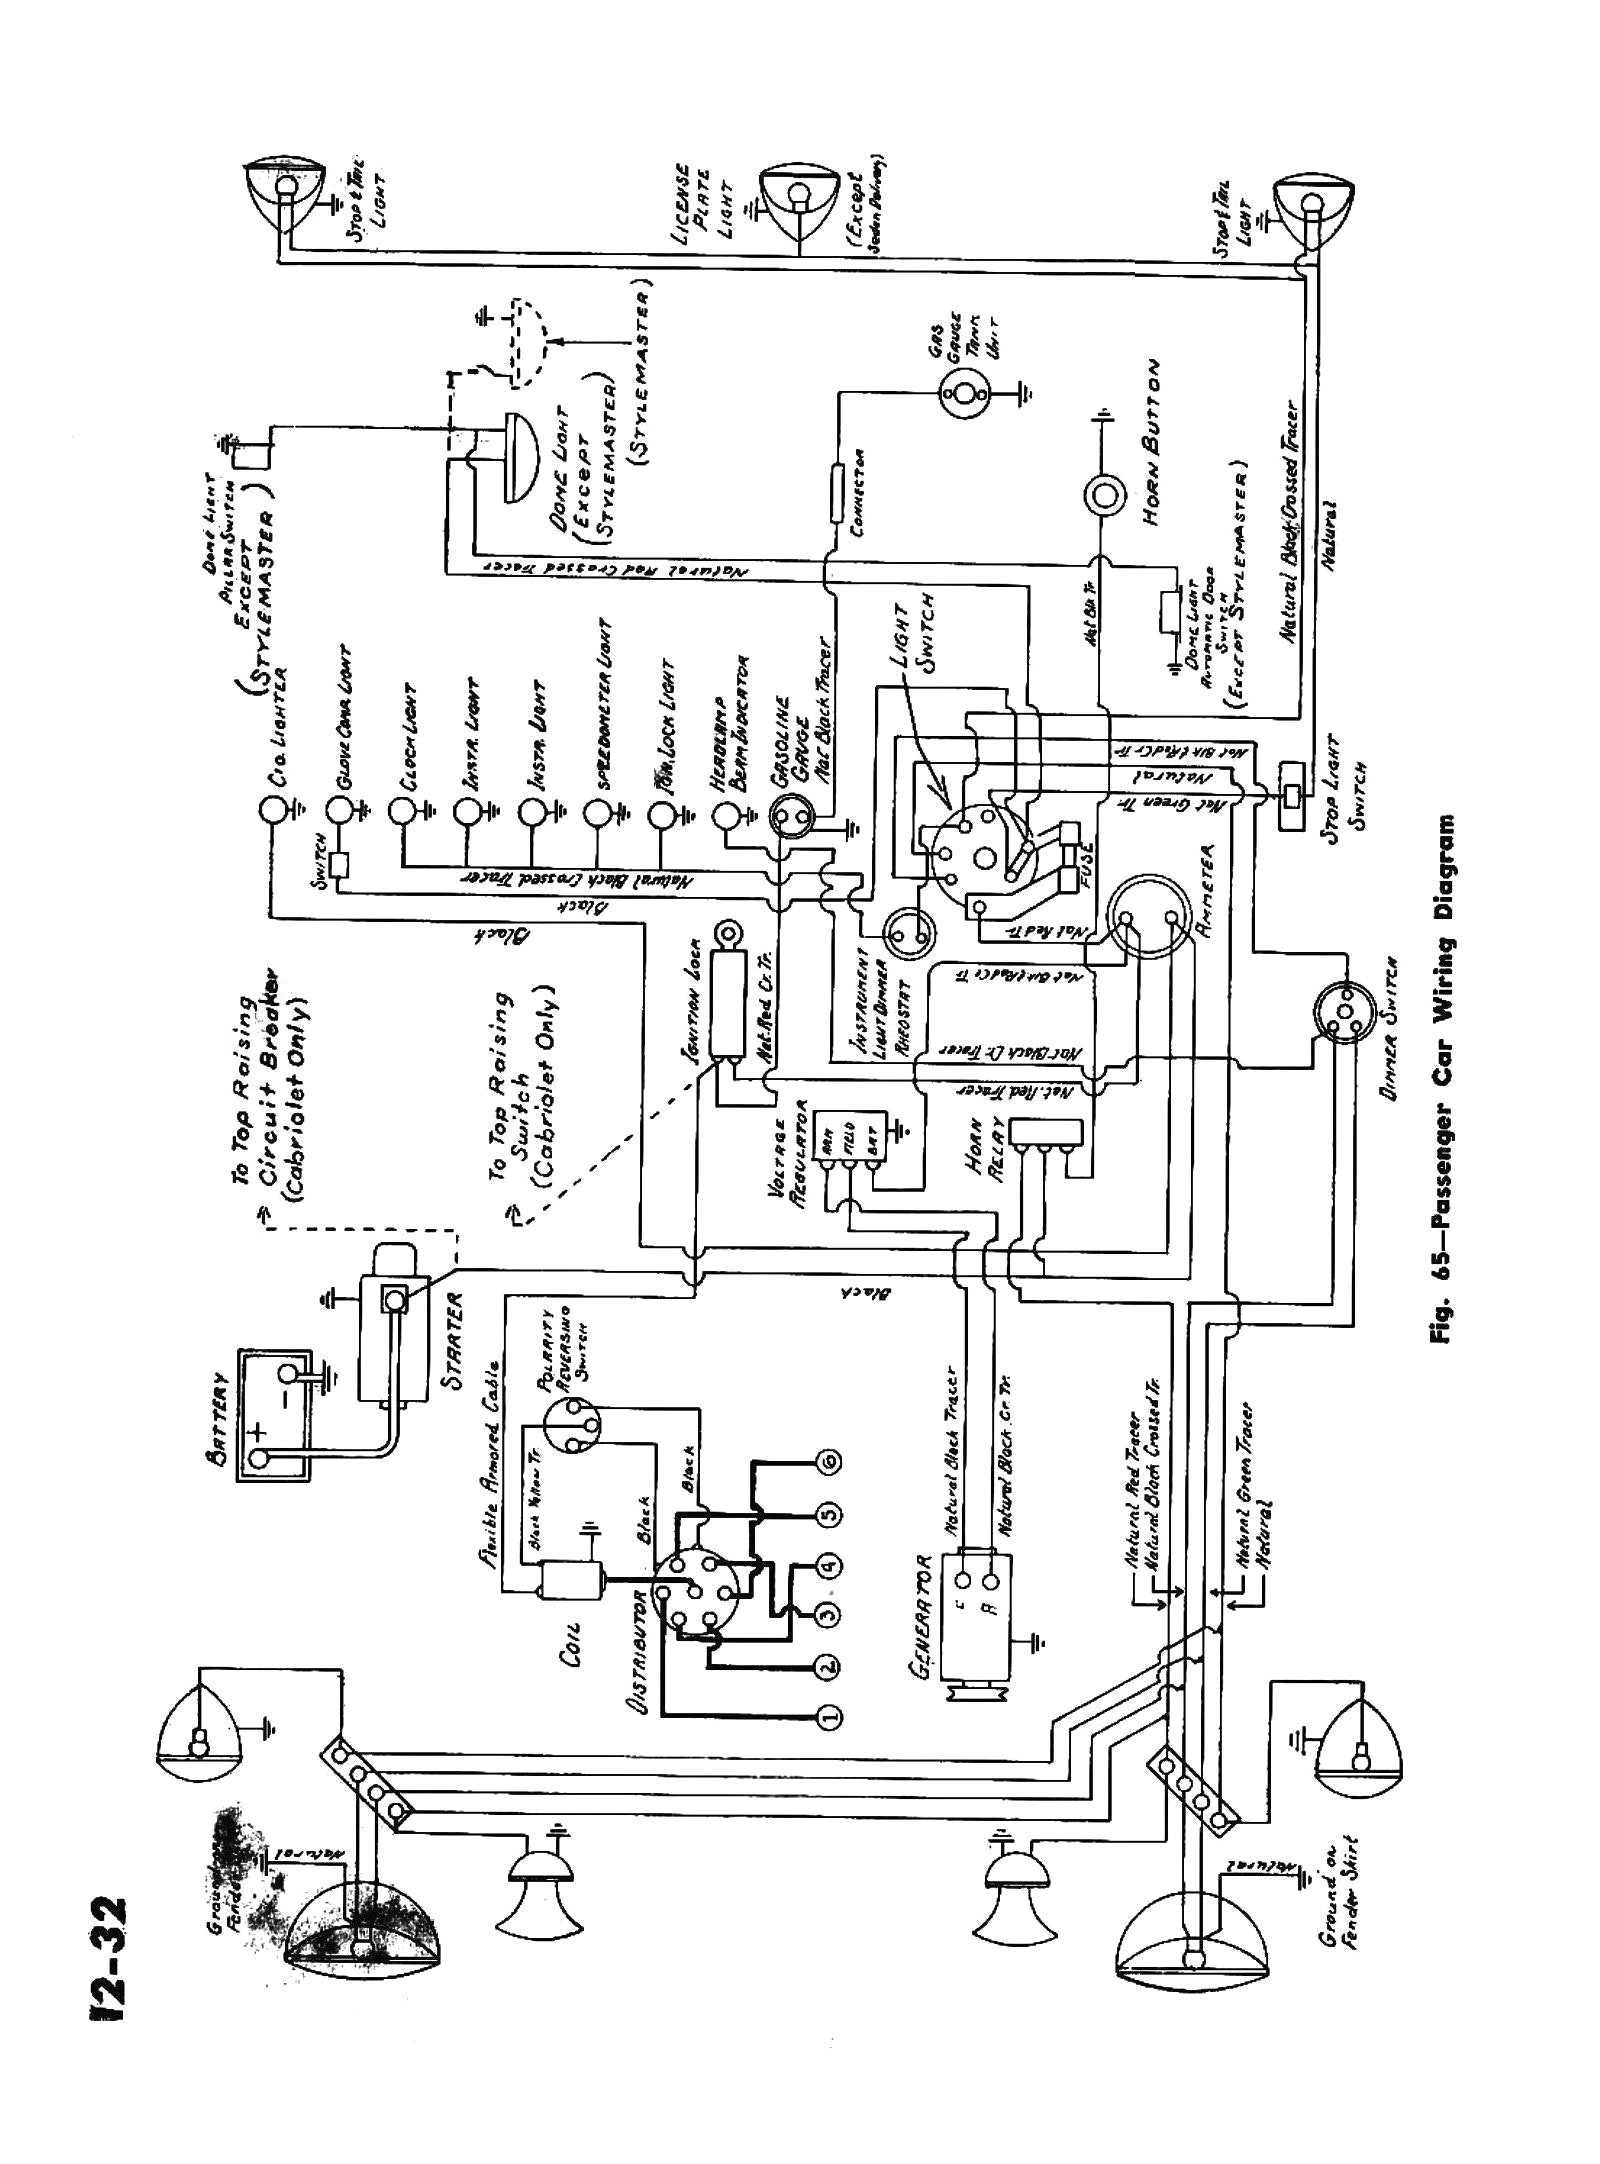 Fabulous Mito 02 Wiring Diagram Download Wiring Diagram Sample Wiring Cloud Hisonuggs Outletorg